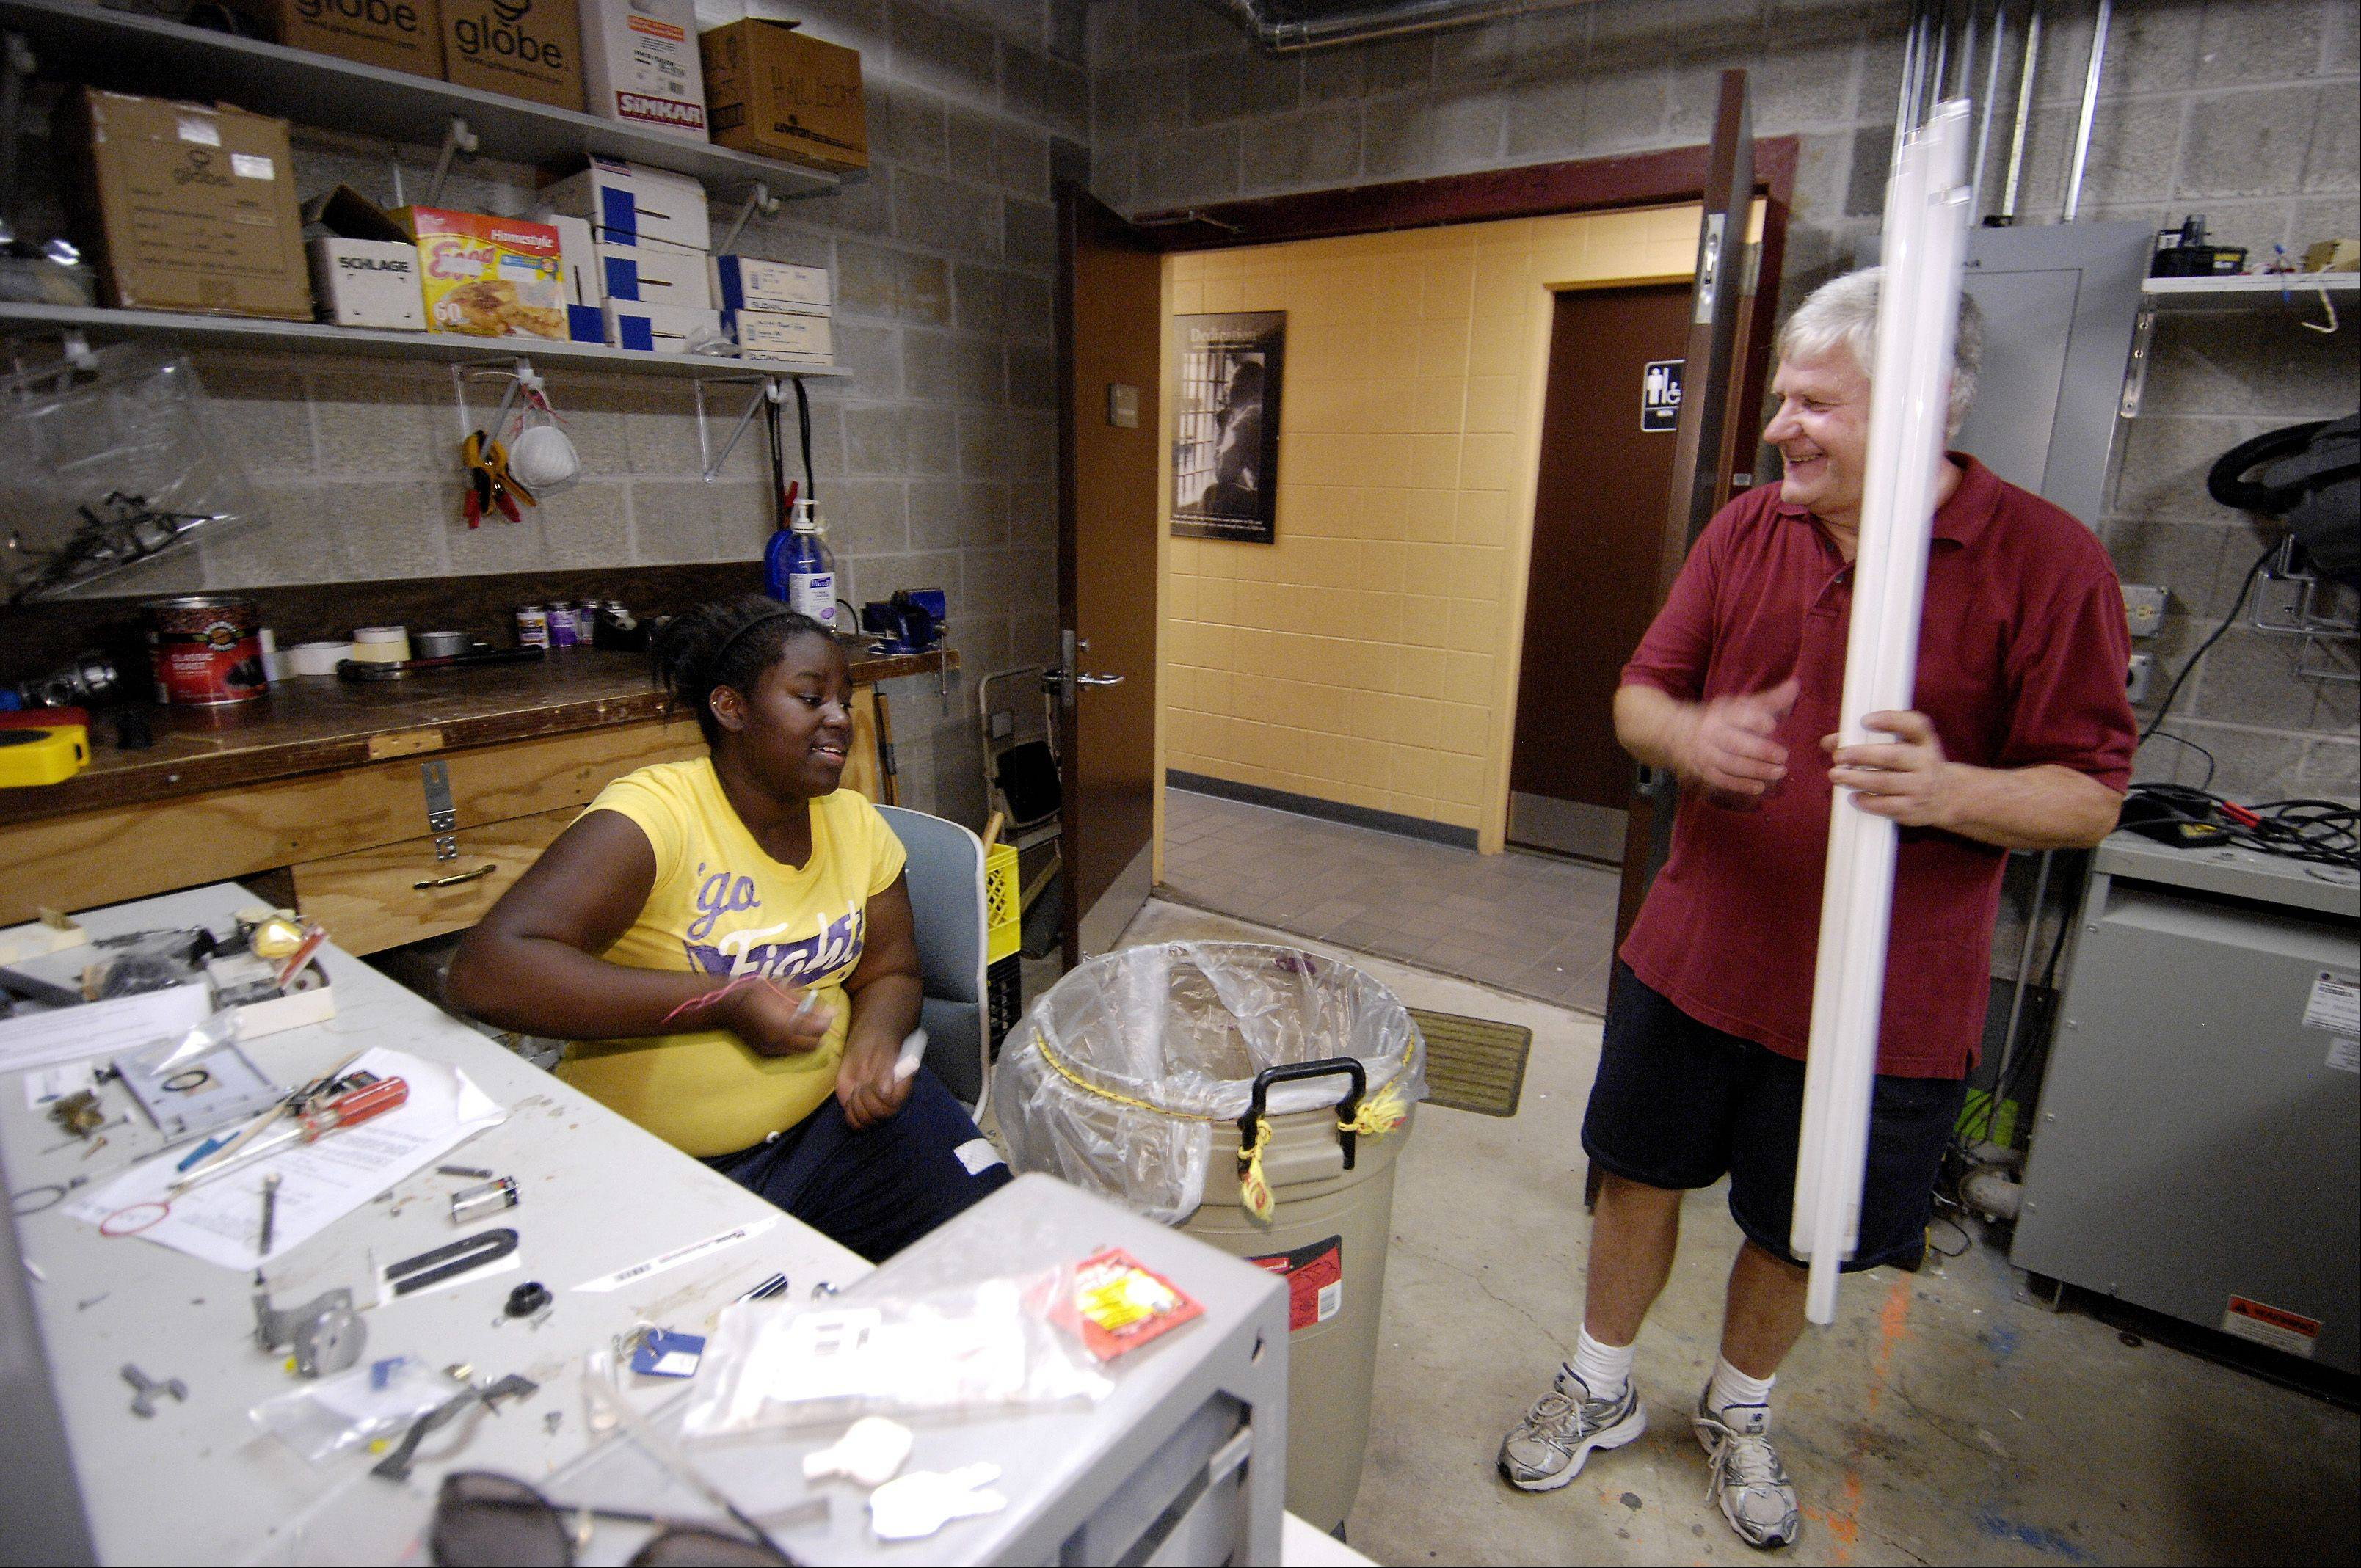 Curt Misavage talks with Nia Williams, 14, while they organize the maintenance room at Outreach Community Ministries in Carol Stream. Misavage is the Facilities Manager and Youth Employment and Education Program mentor at Outreach Community Ministries in Carol Stream.